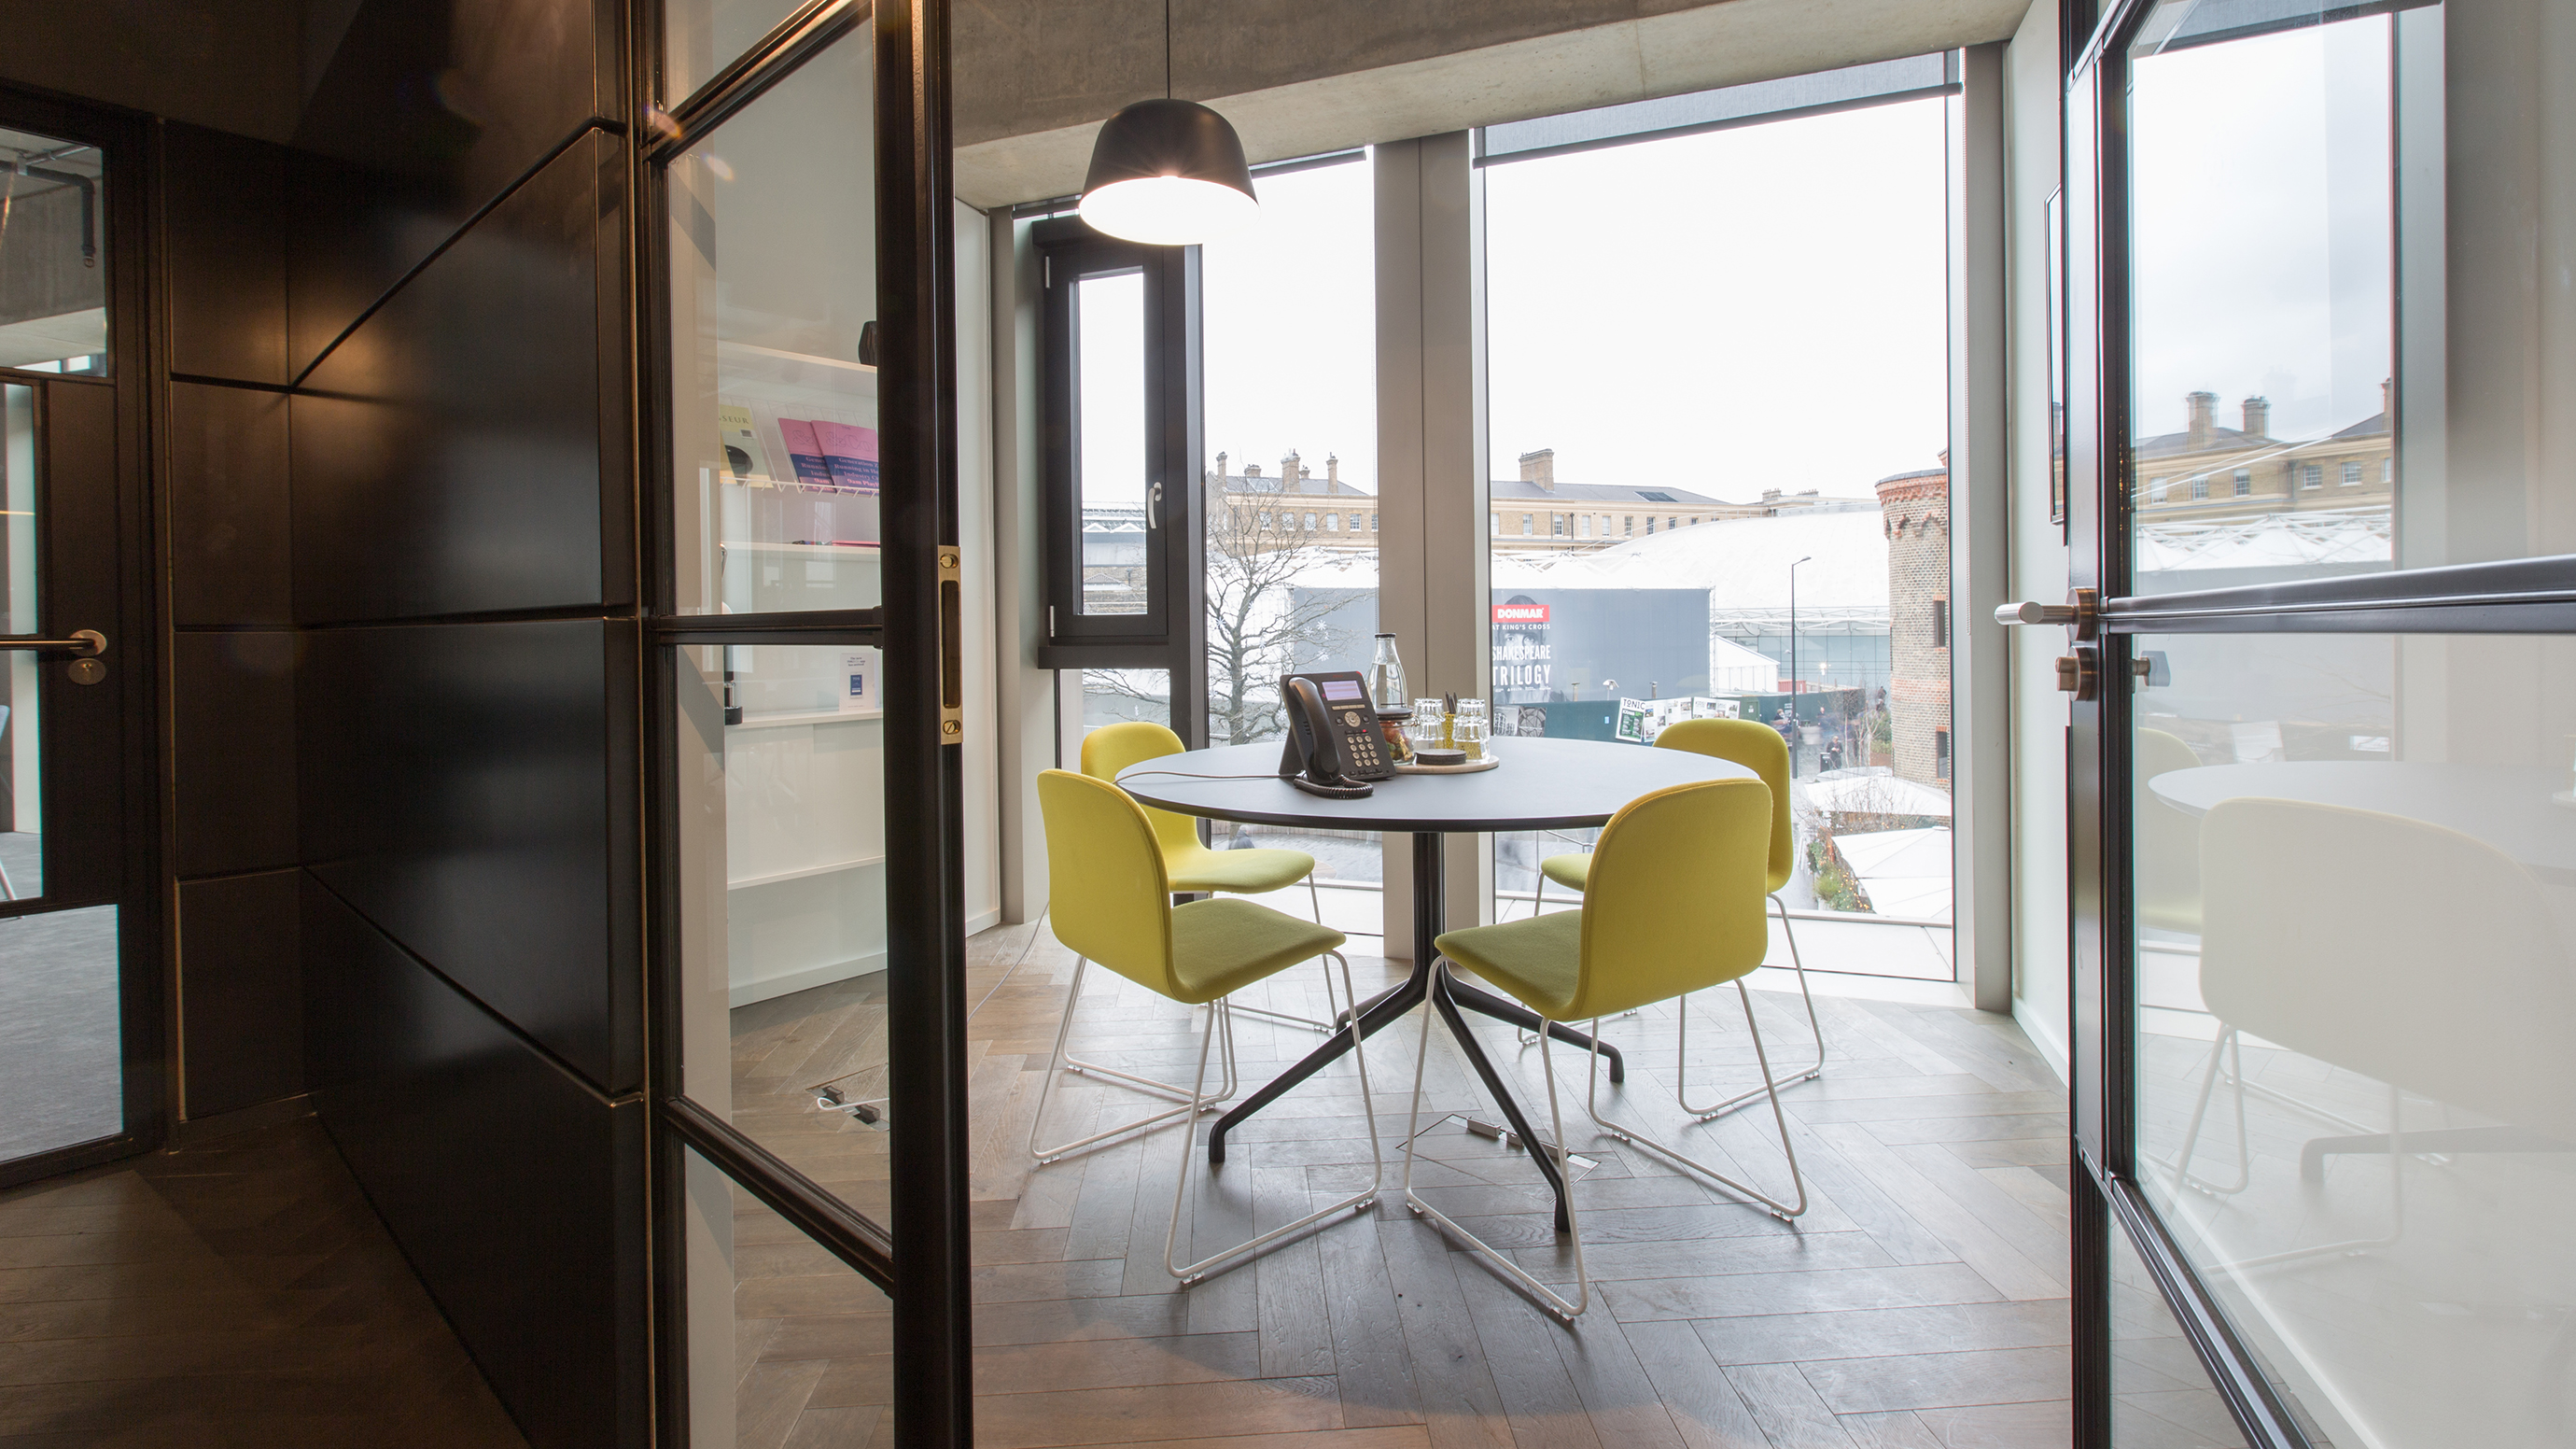 Small meeting room with round table and yellow chairs and large windows at TOG building The Stanley Building London